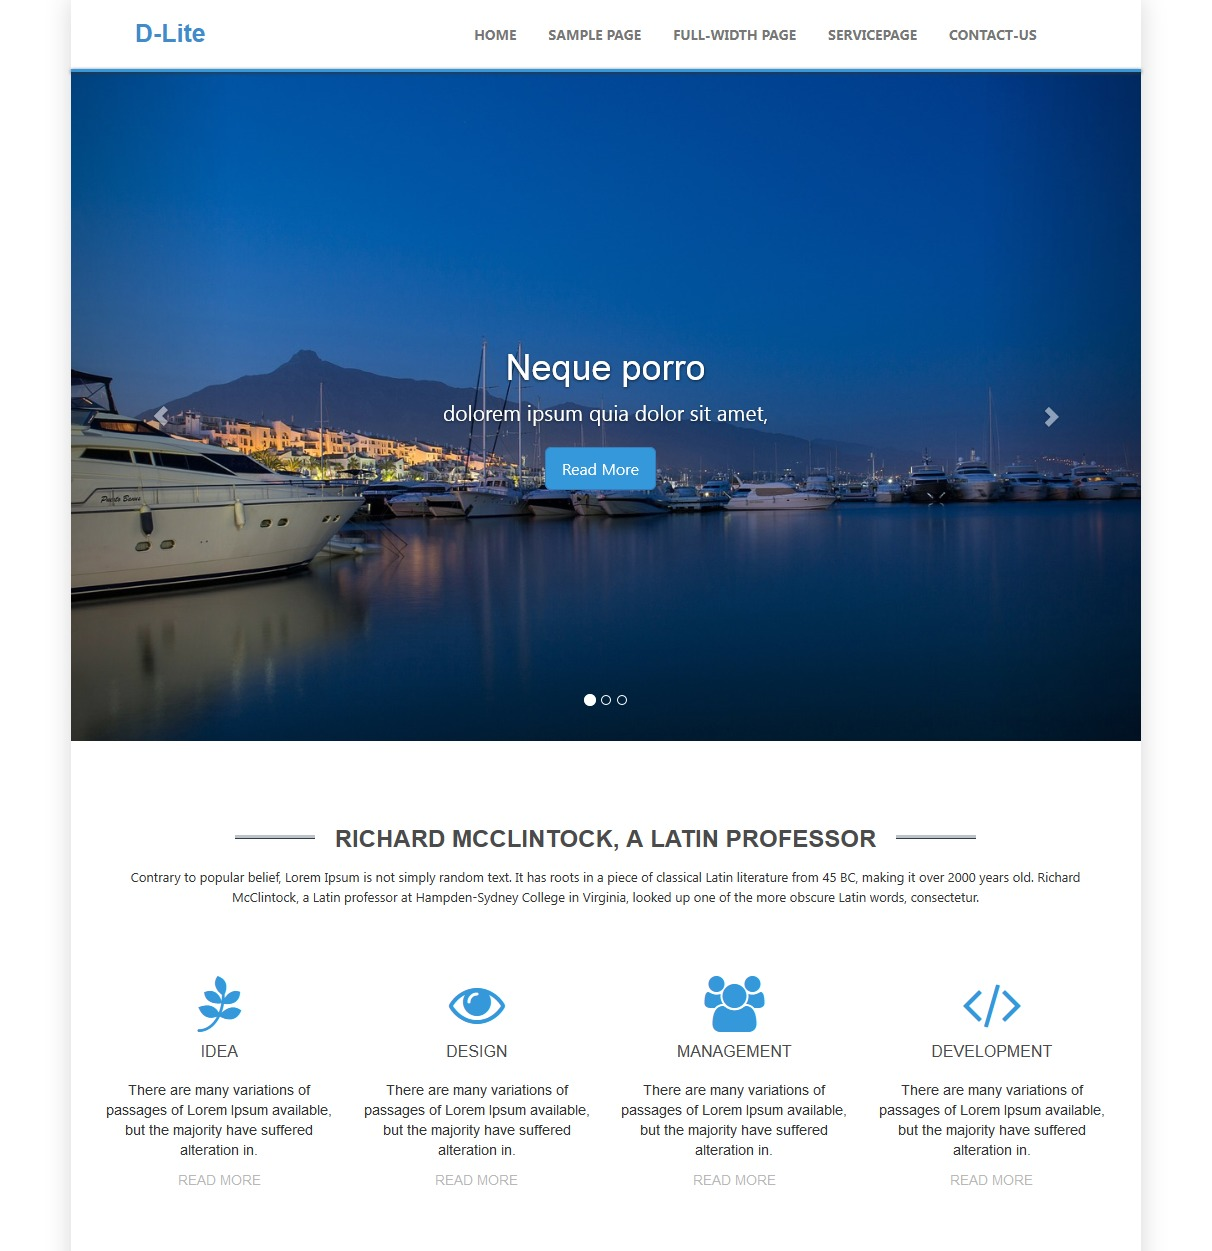 D-lite WordPress template for business